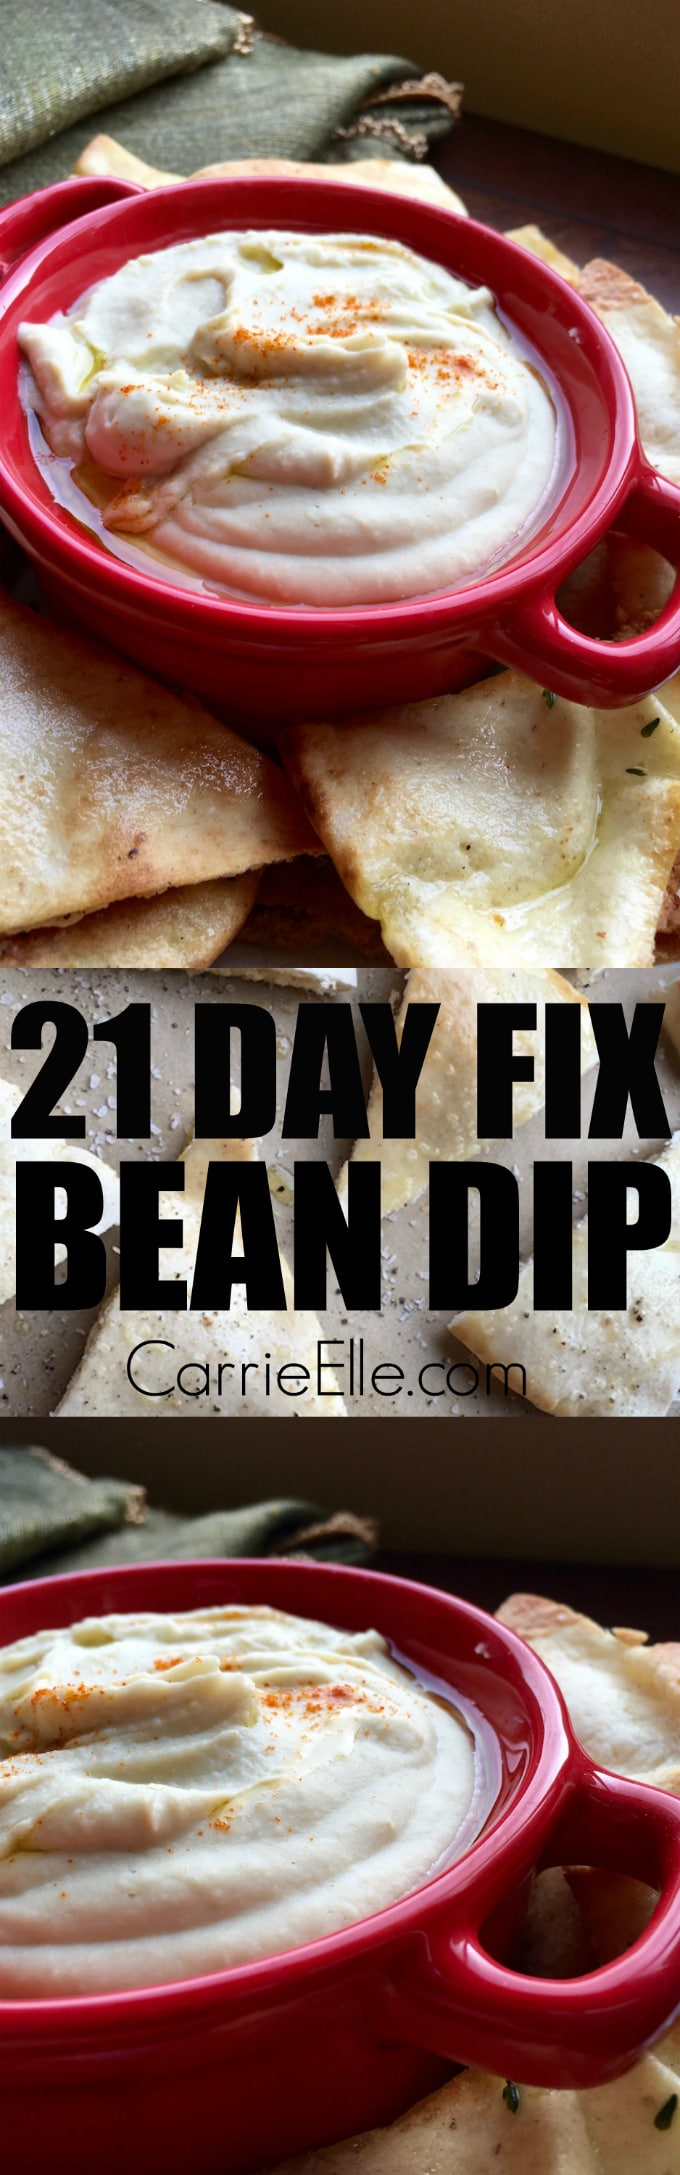 21 Day Fix Bean Dip